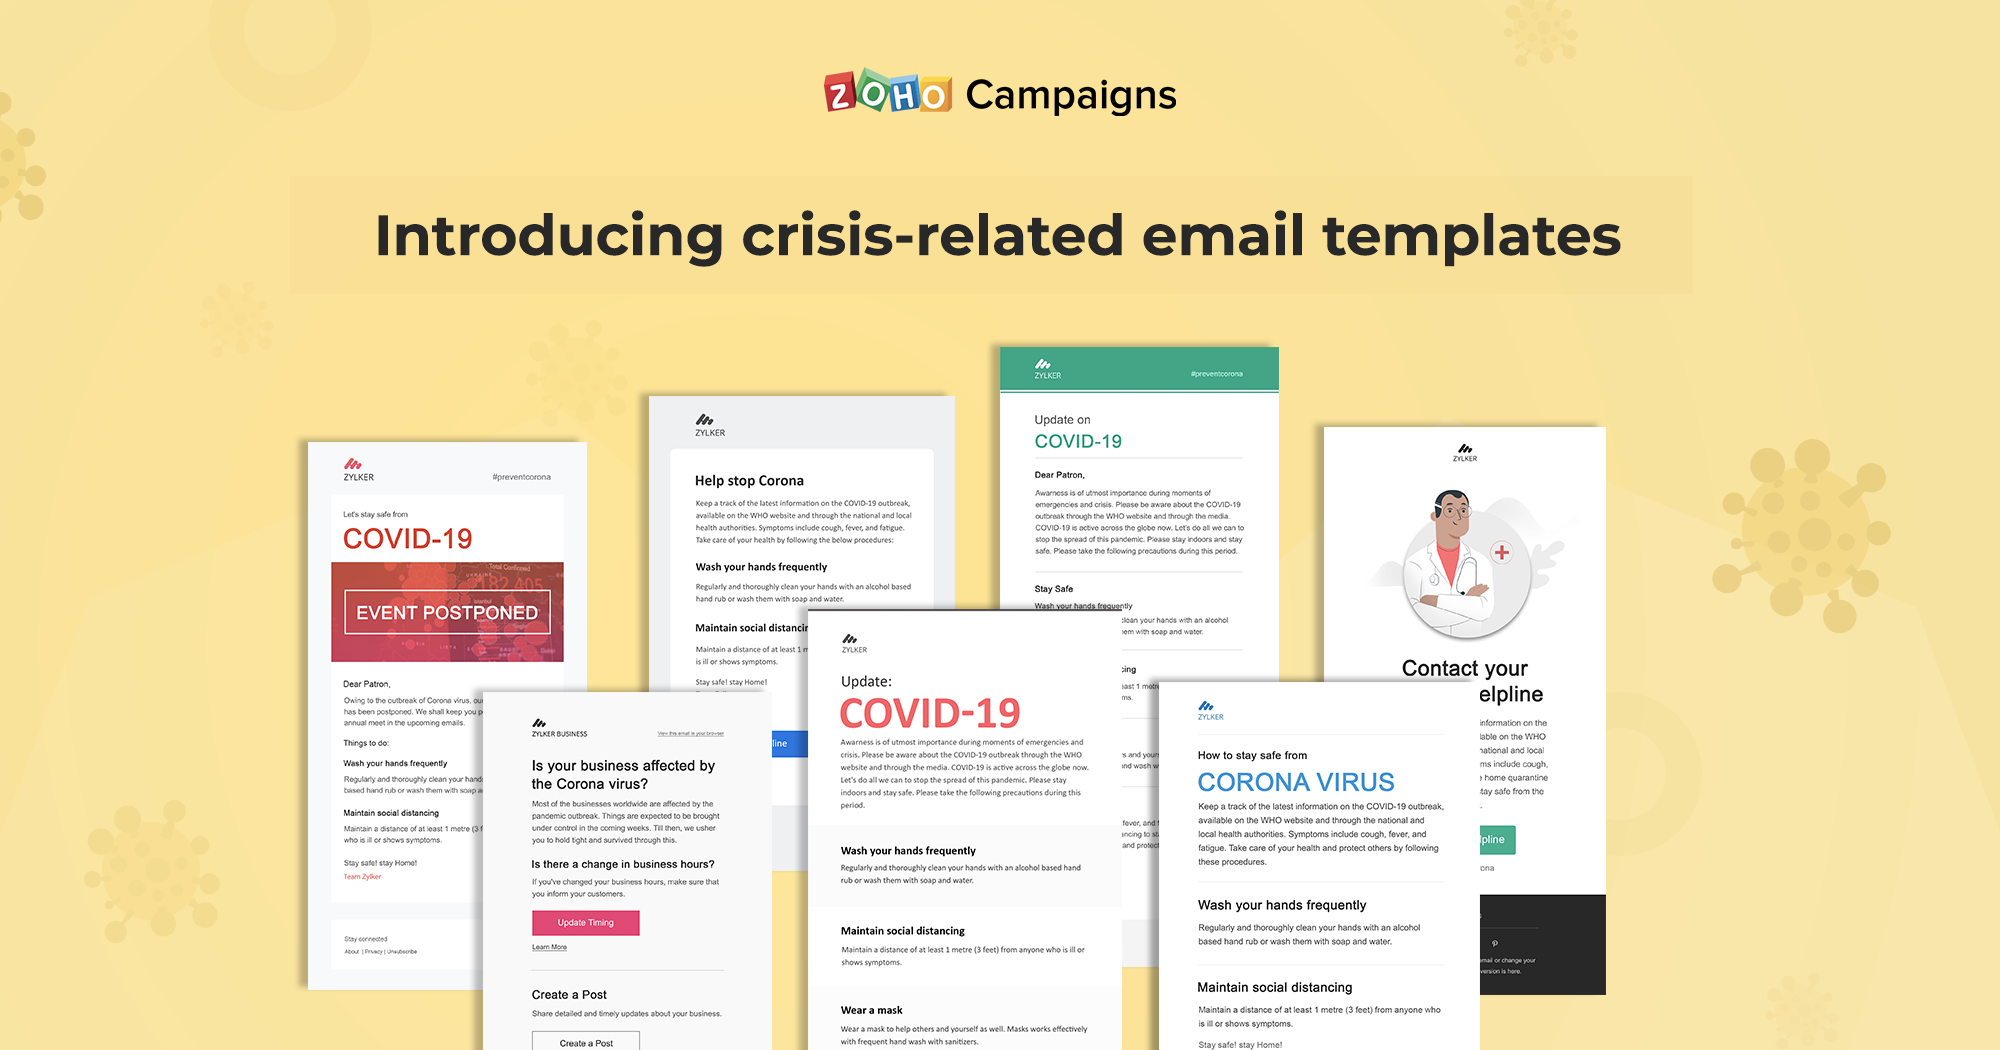 COVID-19 corona virus email marketing crisis management